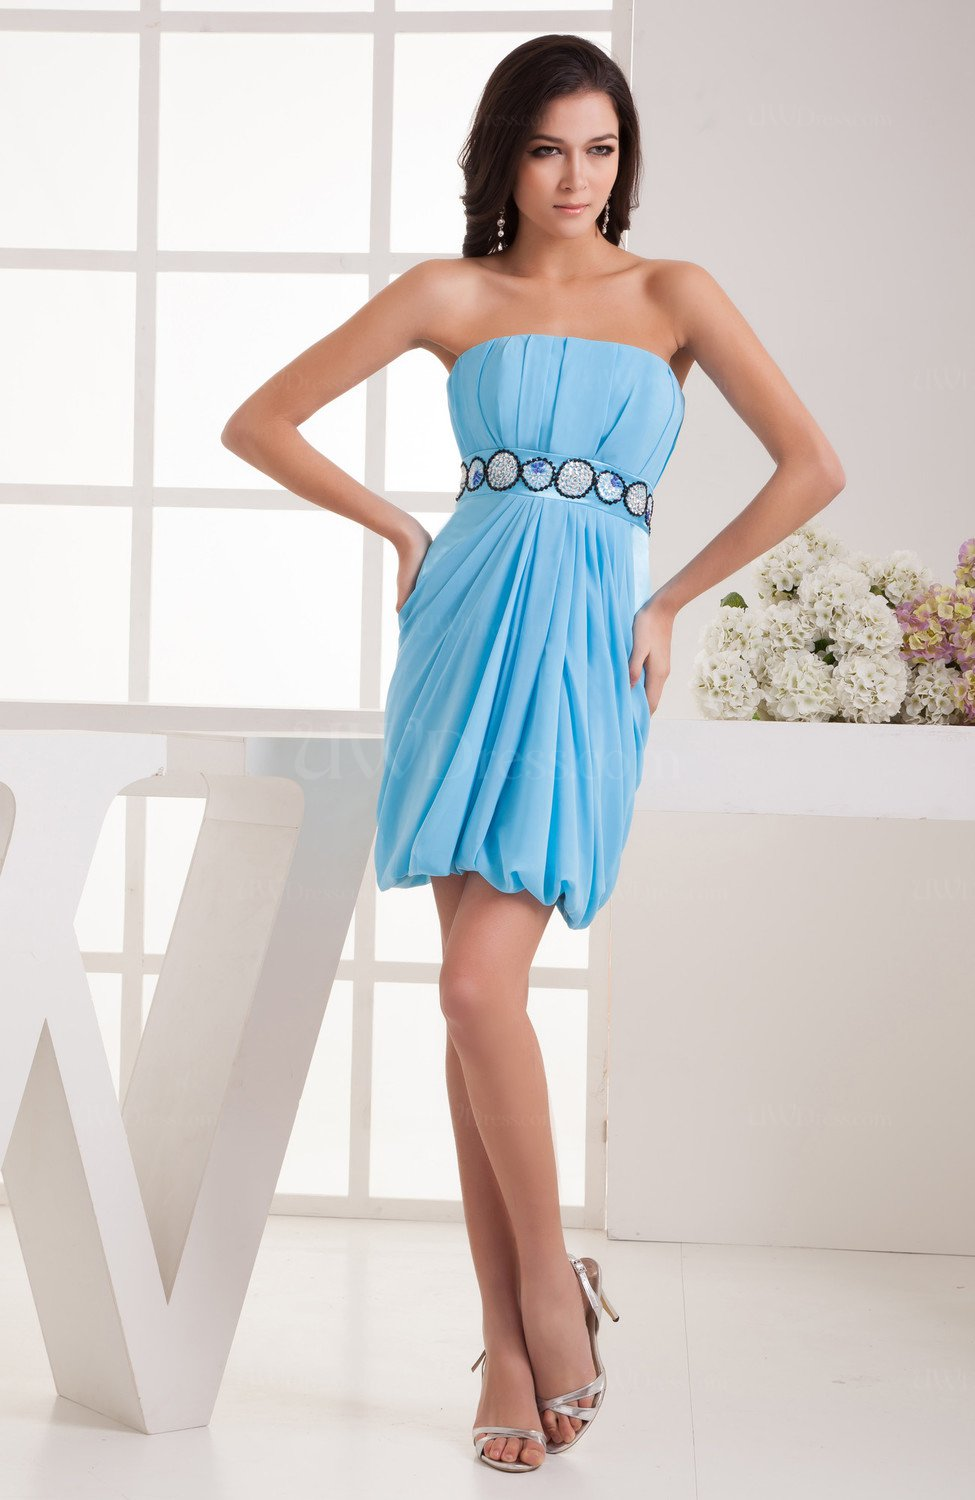 Chiffon bridesmaid dress inexpensive trendy chic mini Inexpensive chic